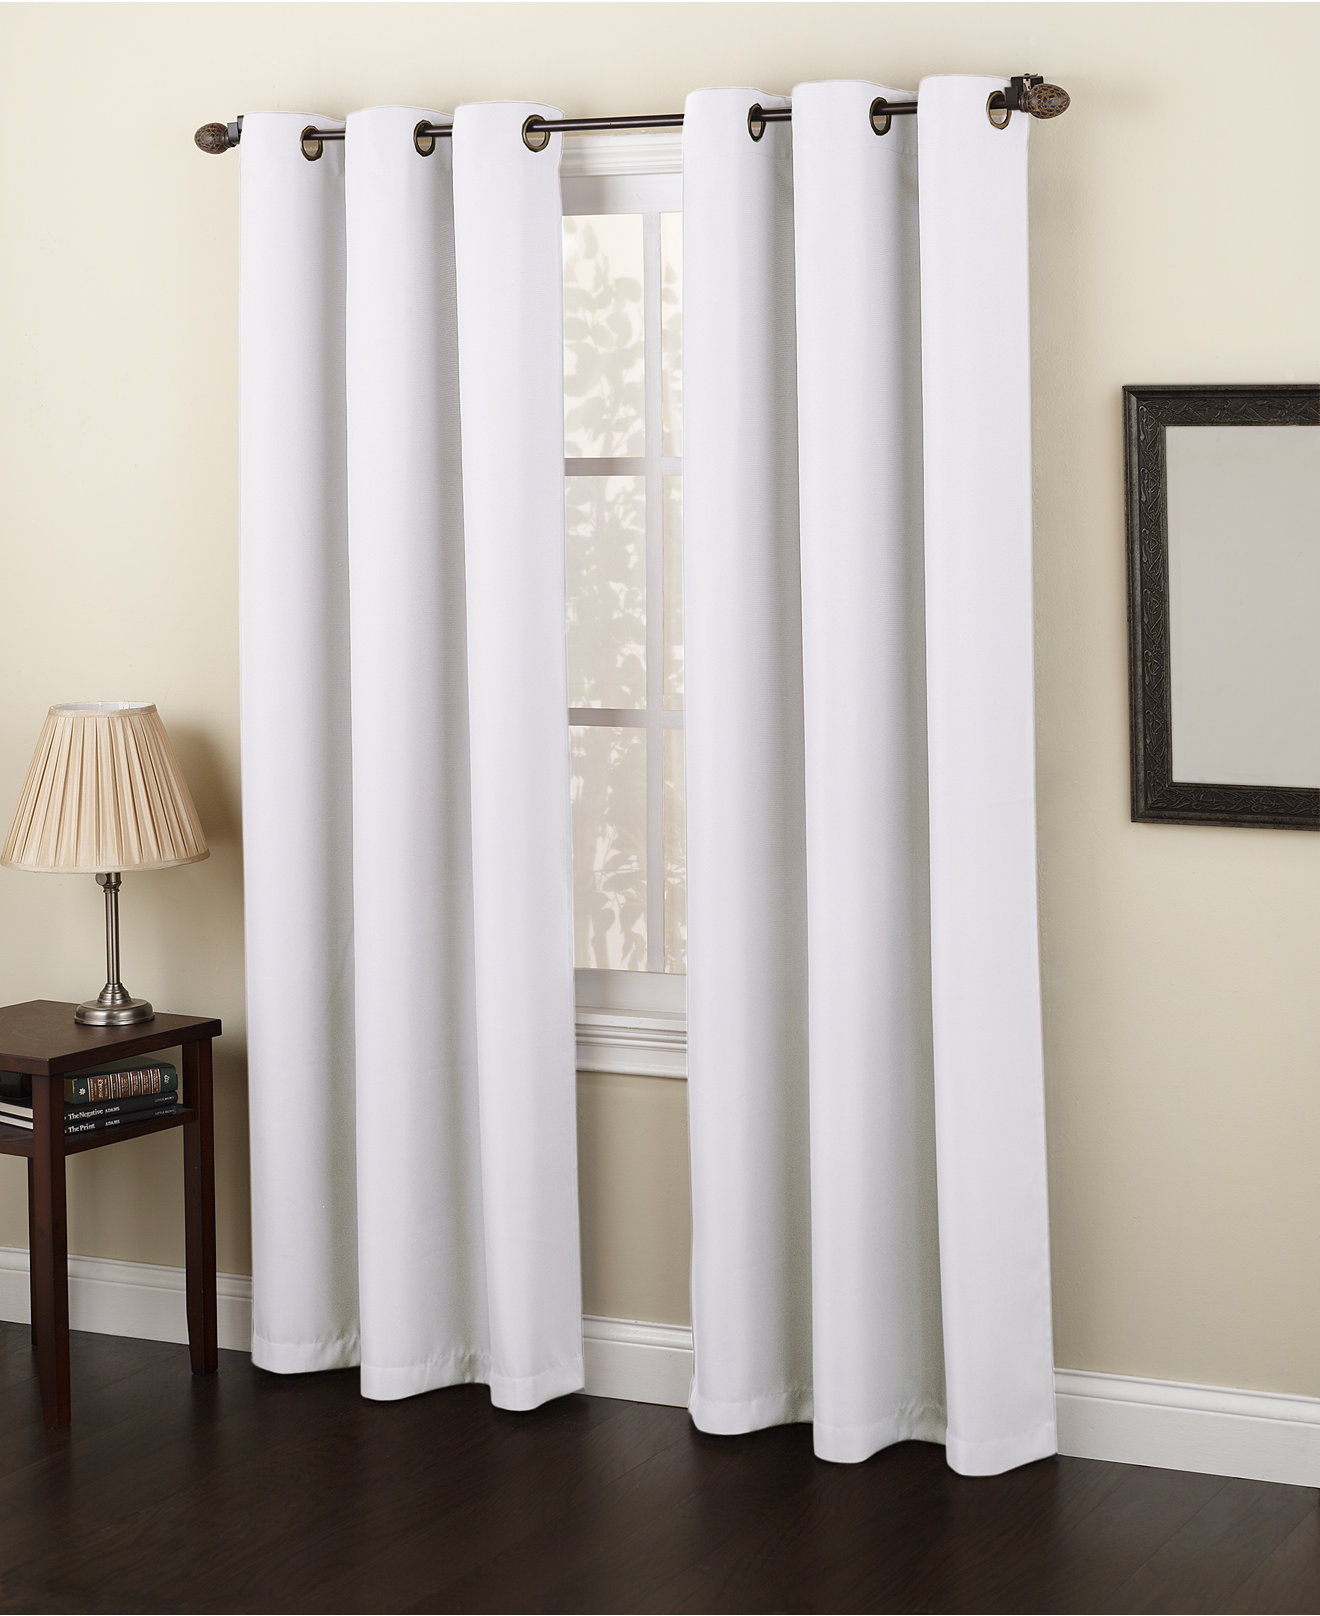 Cheap Blackout Curtains for Inspiring Home Decorating Ideas: Short Blackout Curtains | Blackout Lined Curtains | Cheap Blackout Curtains